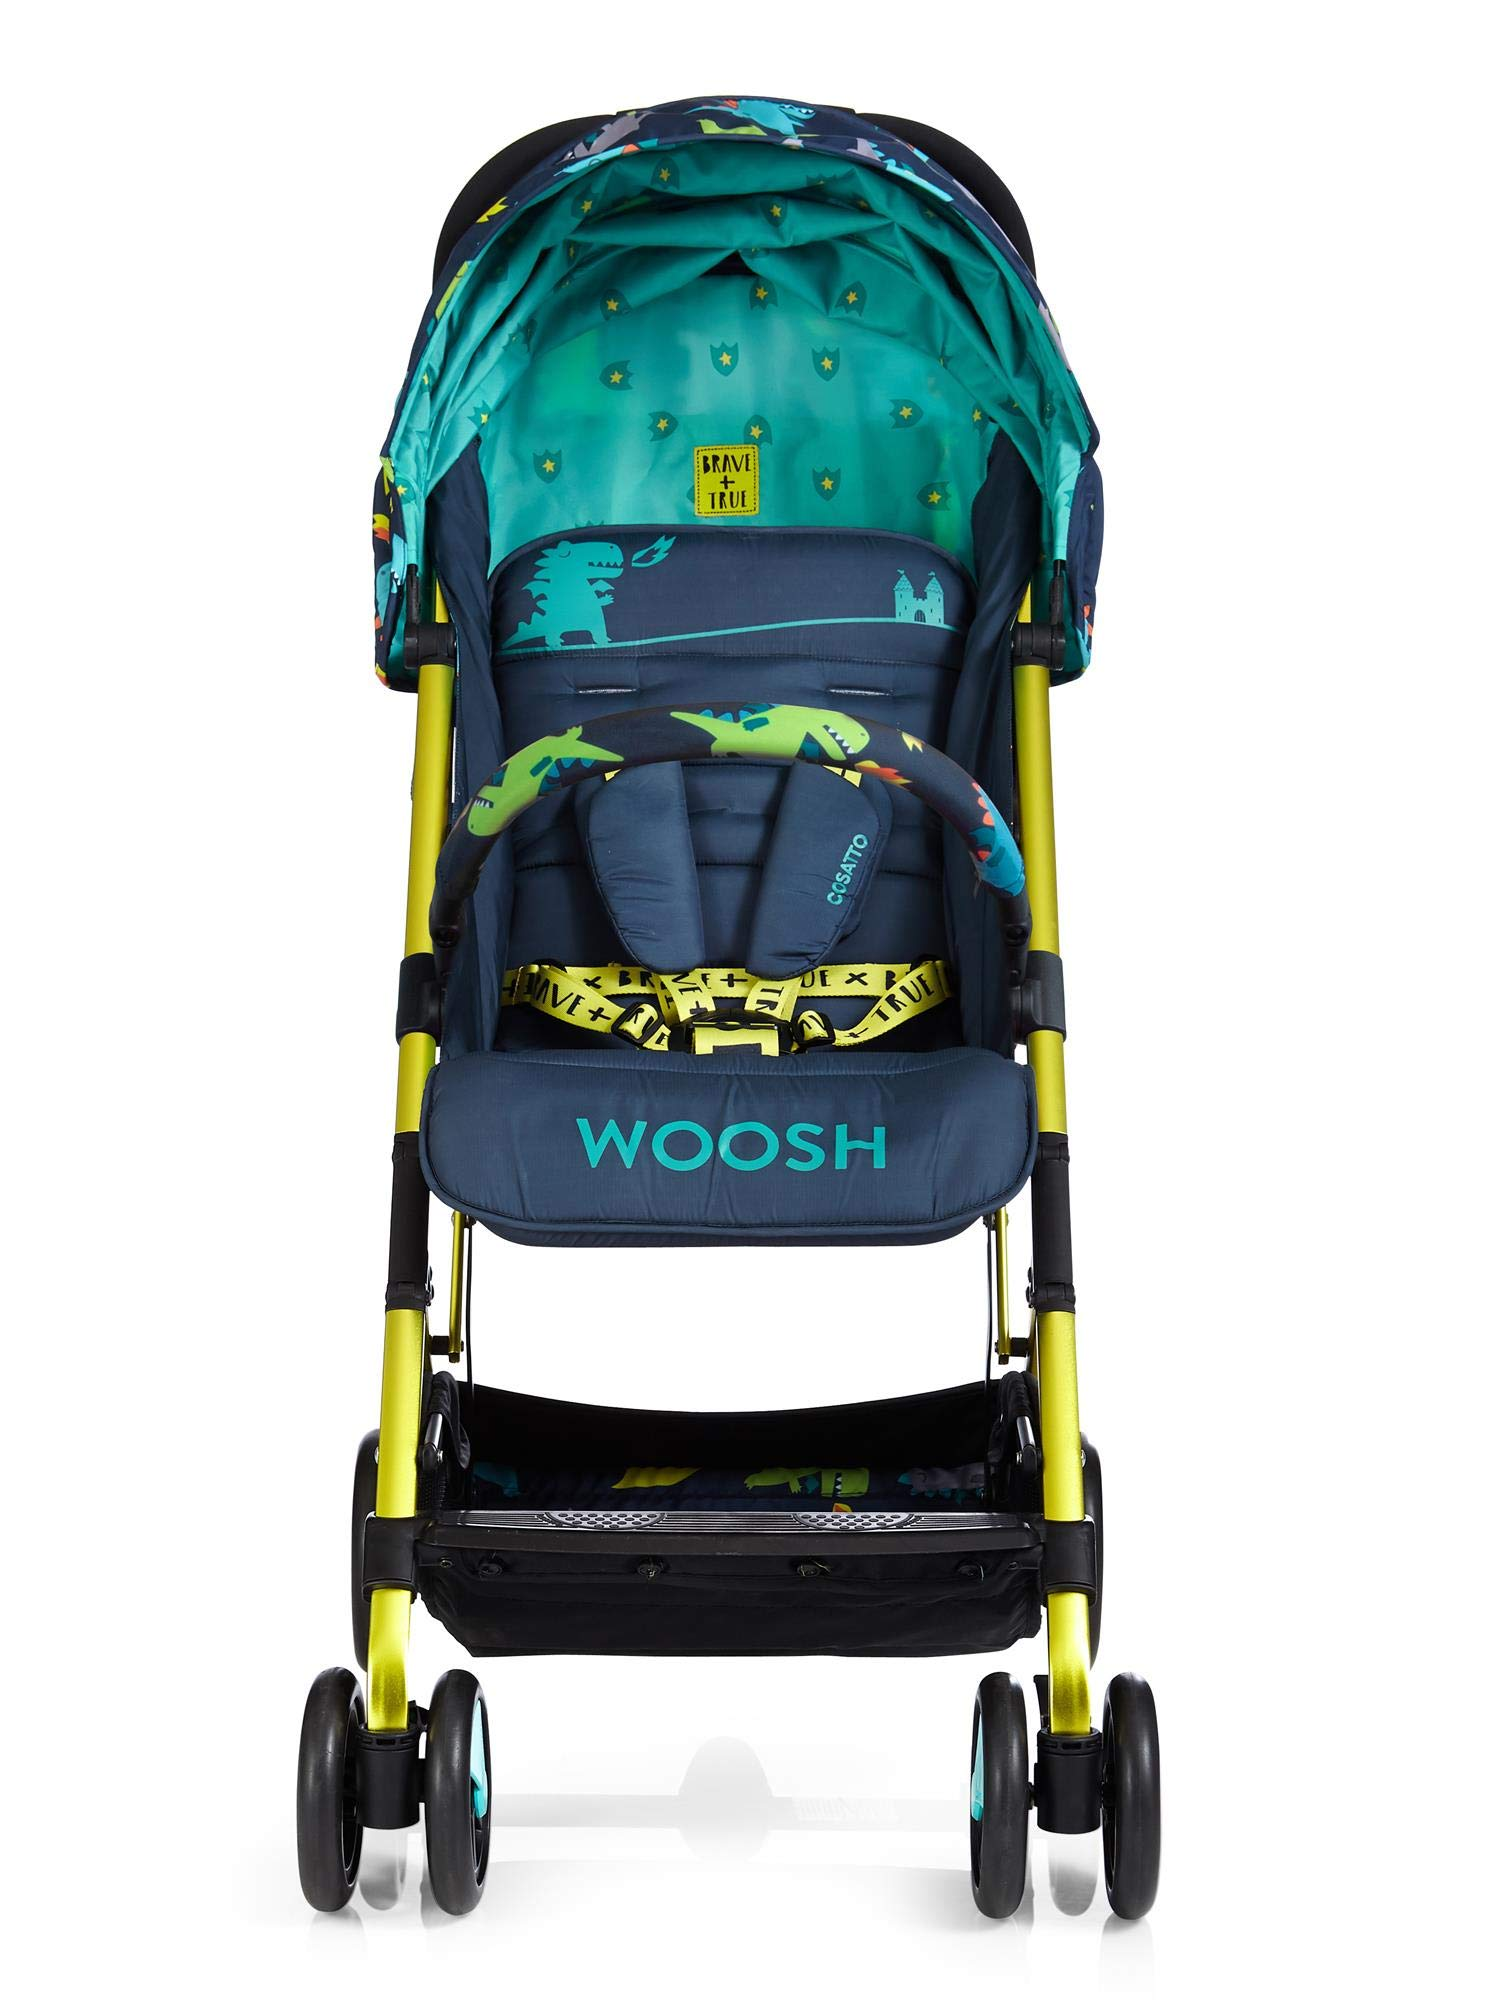 Cosatto CT4253 Woosh 2 Dragon Kingdom 7.2 kg Cosatto Suitable from birth to max weight of 25kg, lets your toddler use it for even longer Lightweight, sturdy aluminium frame New-born recline 4